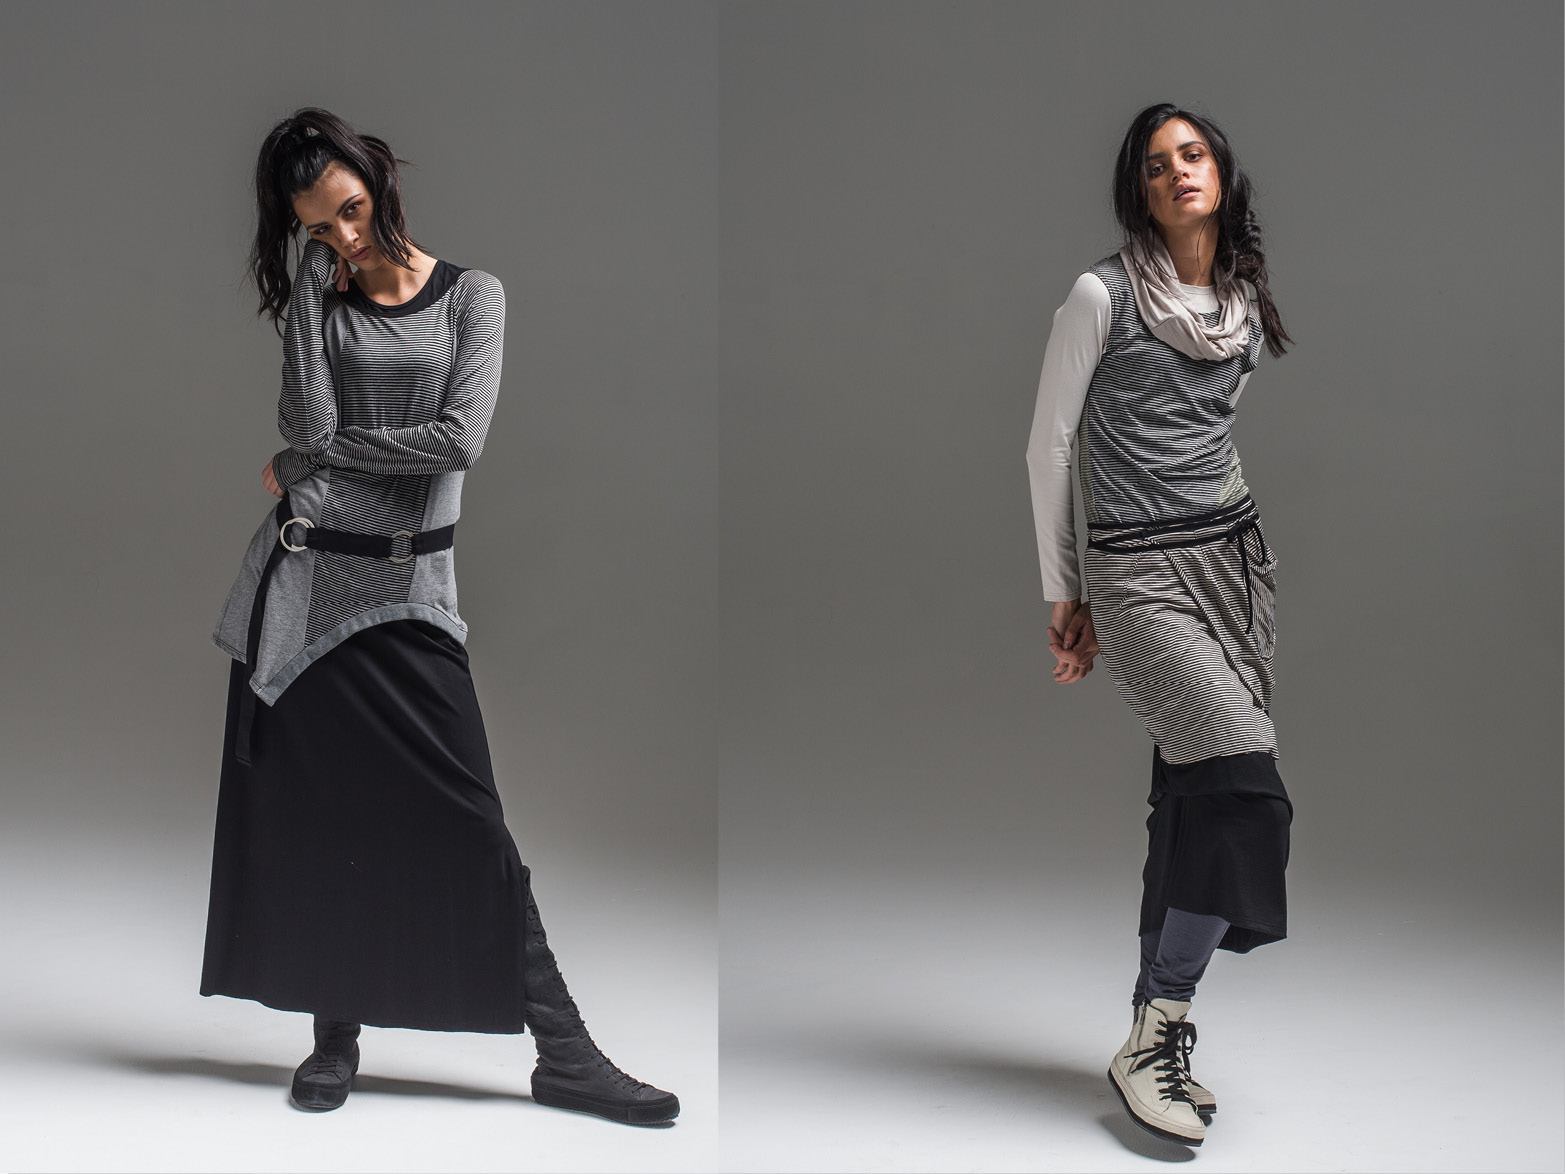 L: Obsidian top, Coco top, Emma skirt + Circle belt R: Multitude top, Treble vest, wool Thea skirt, wool Nellie pant, wool Infinity scarf + Cee Cee wrap